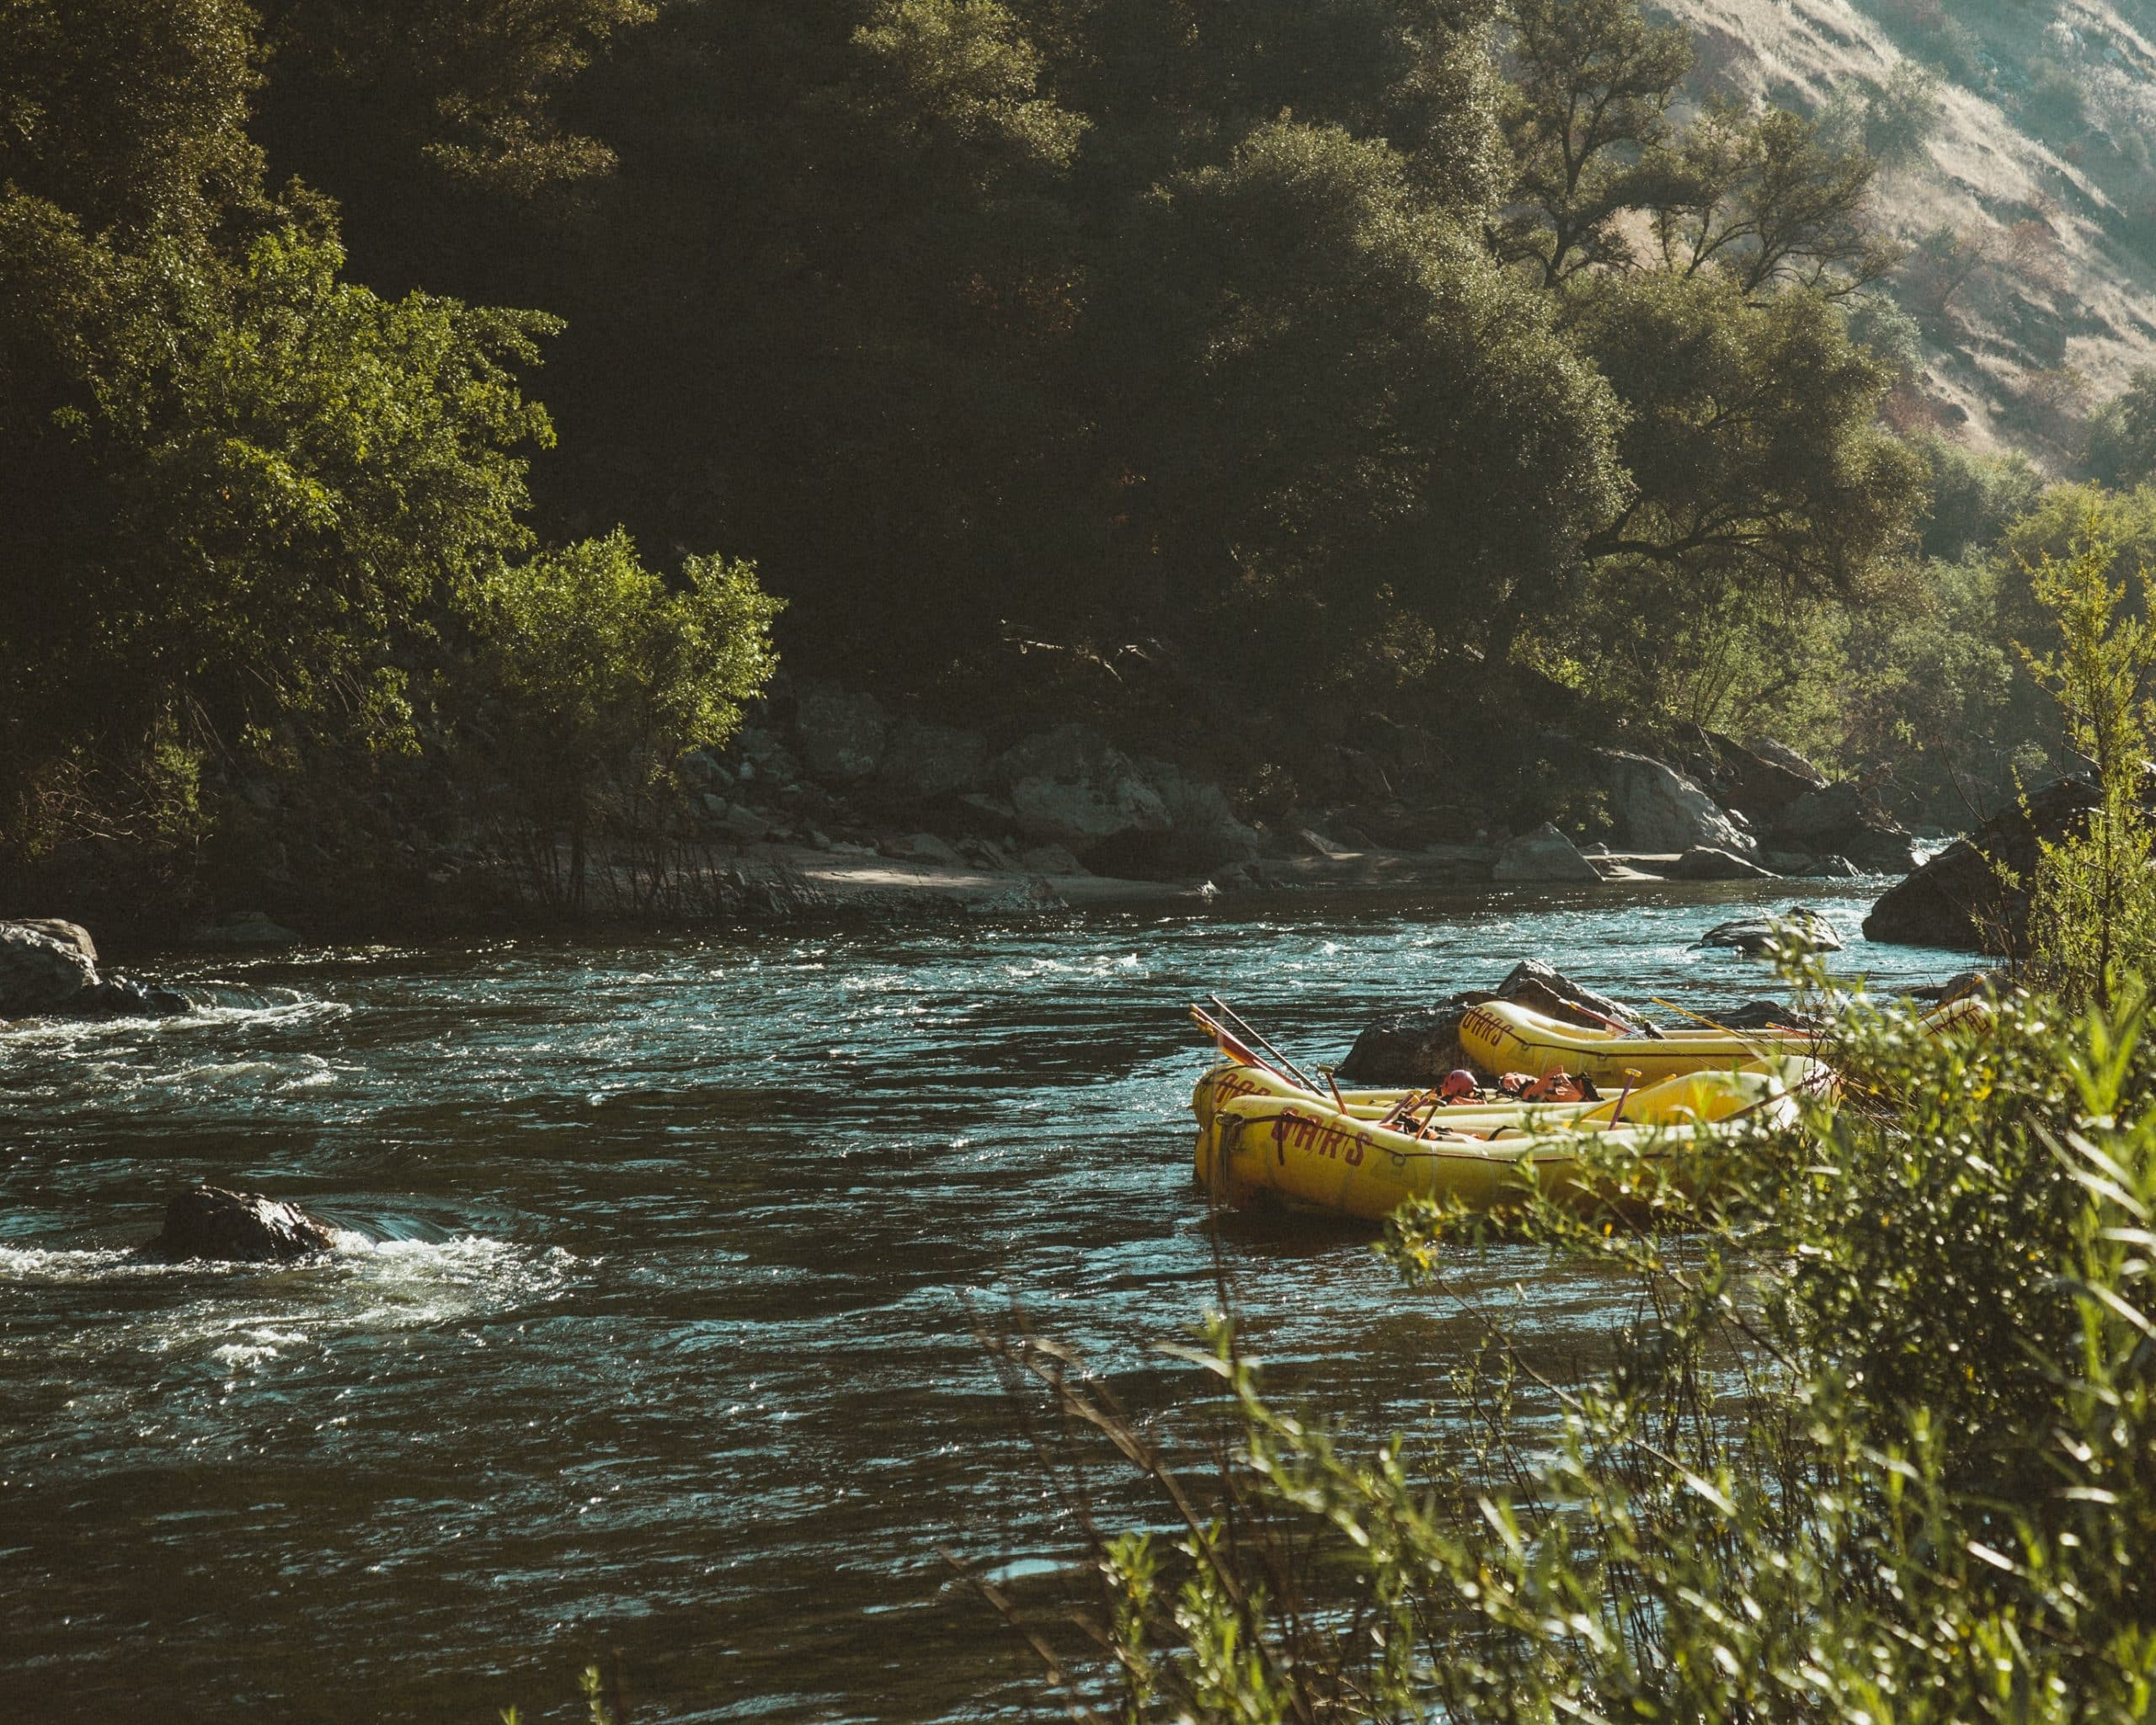 gallery image for 1 Day Rafting Morocco's Grand Canyon Ahensal River